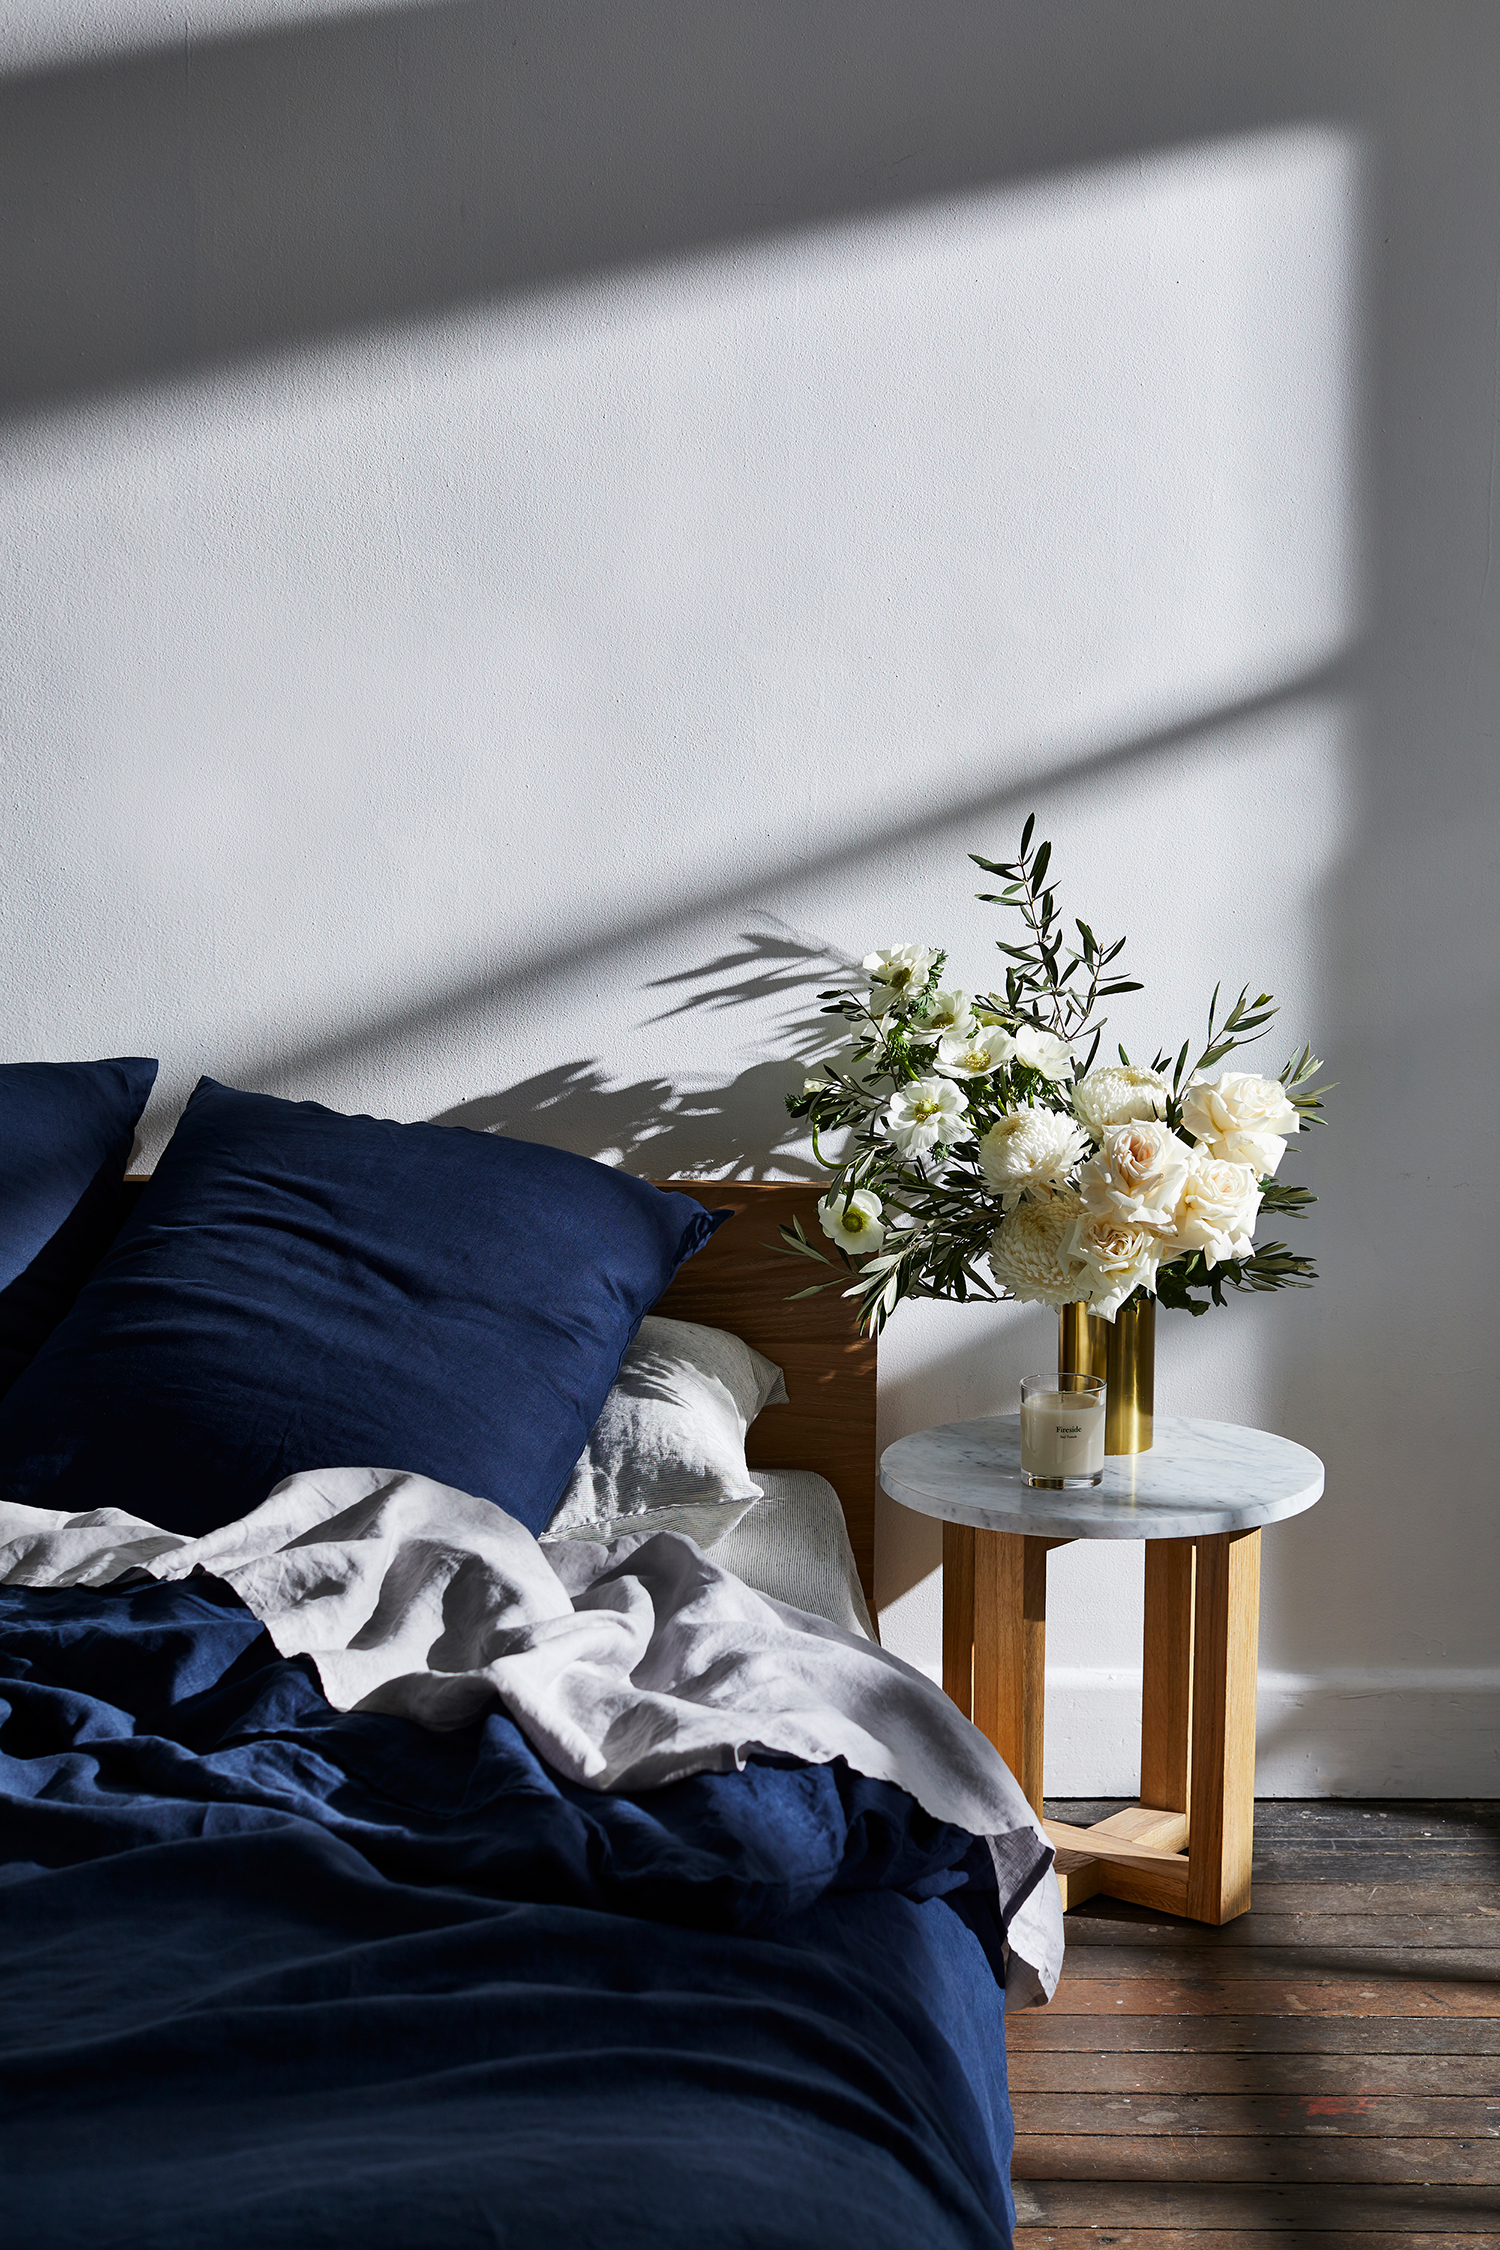 Bed Threads Linen shot by Sydney advertising food and lifestyle photographer Benito Martin